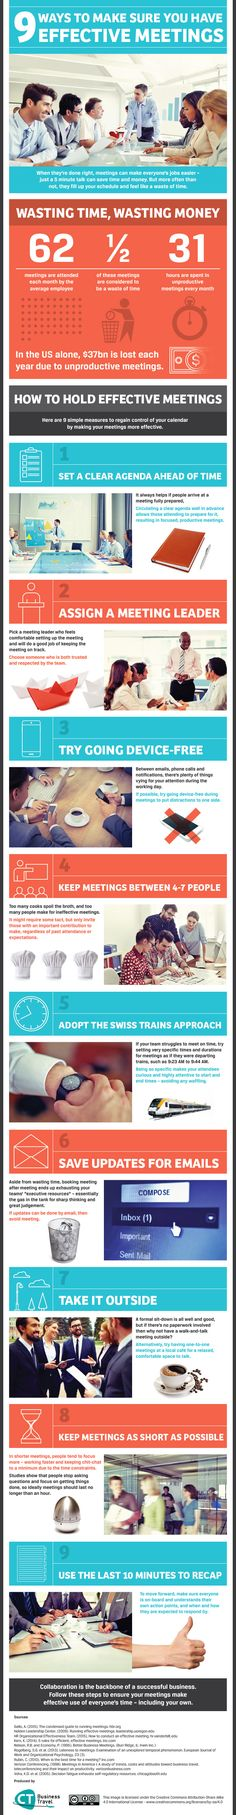 Tired of Useless Meetings? 9 Ways to Make Them More Effective. #Infographic #business #startup